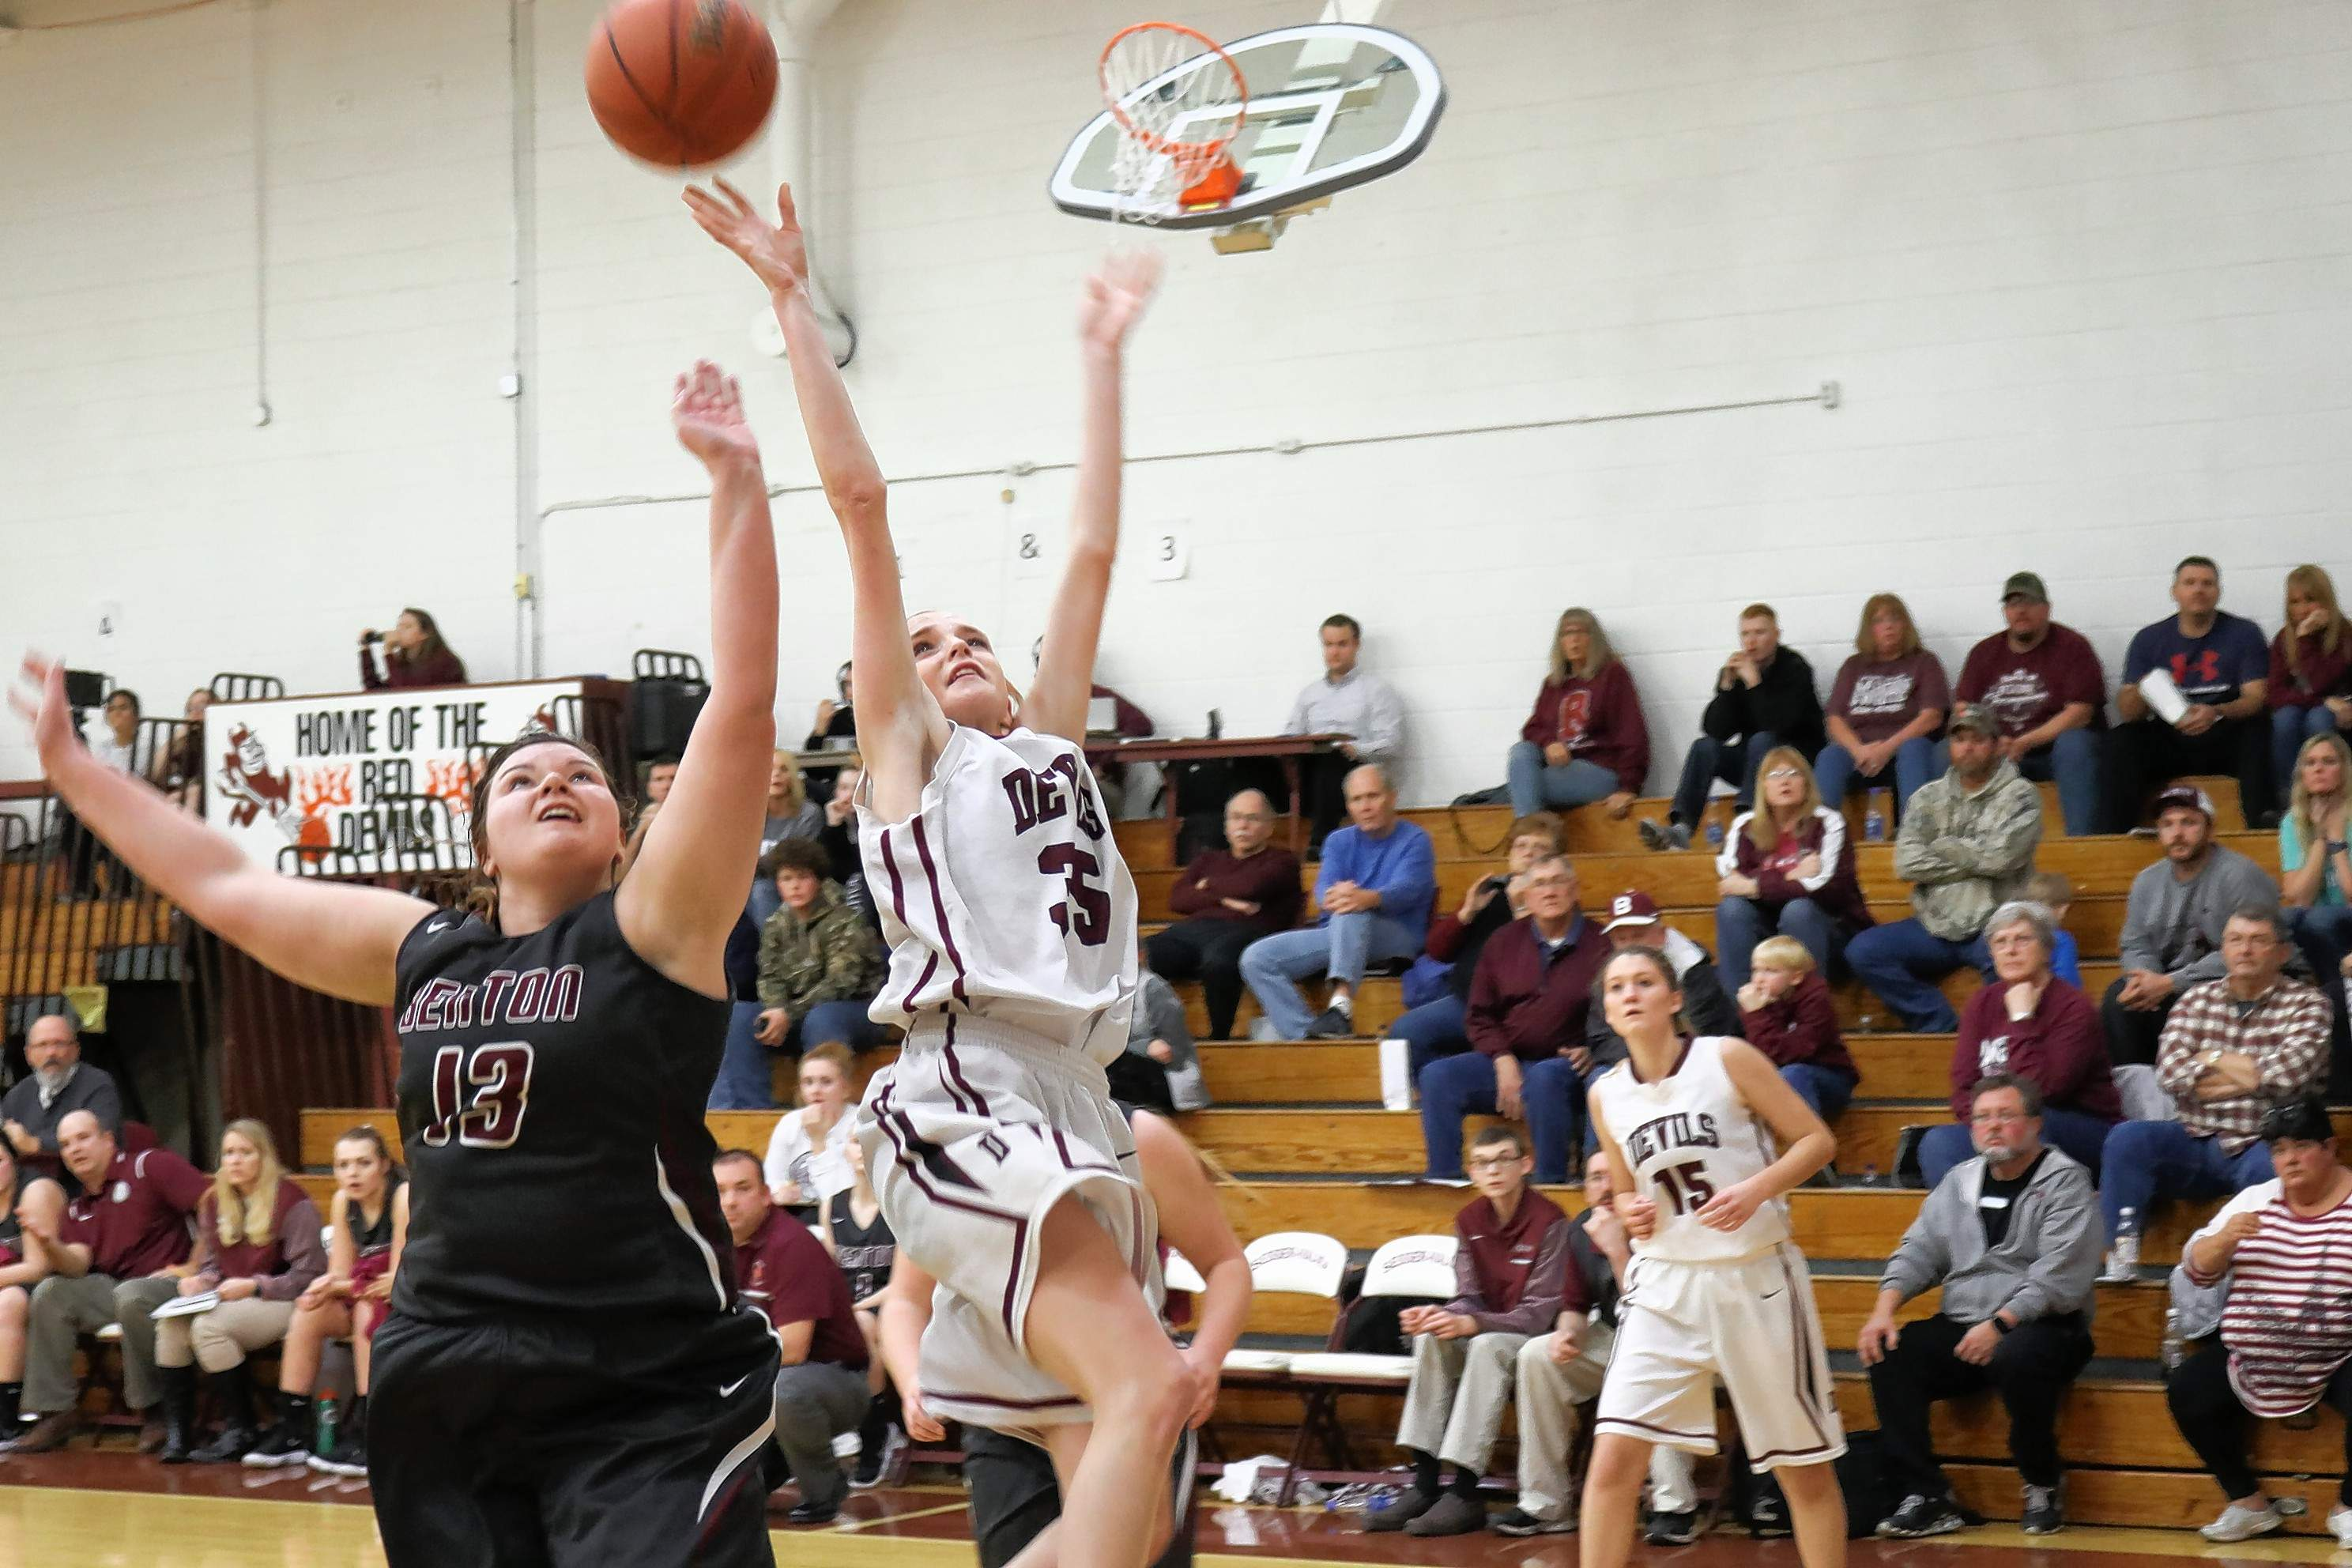 Paige Tucker (white jersey) of the Red Devils goes up for a shot against Benton's Macie Cockrum in last week's home game with Benton.